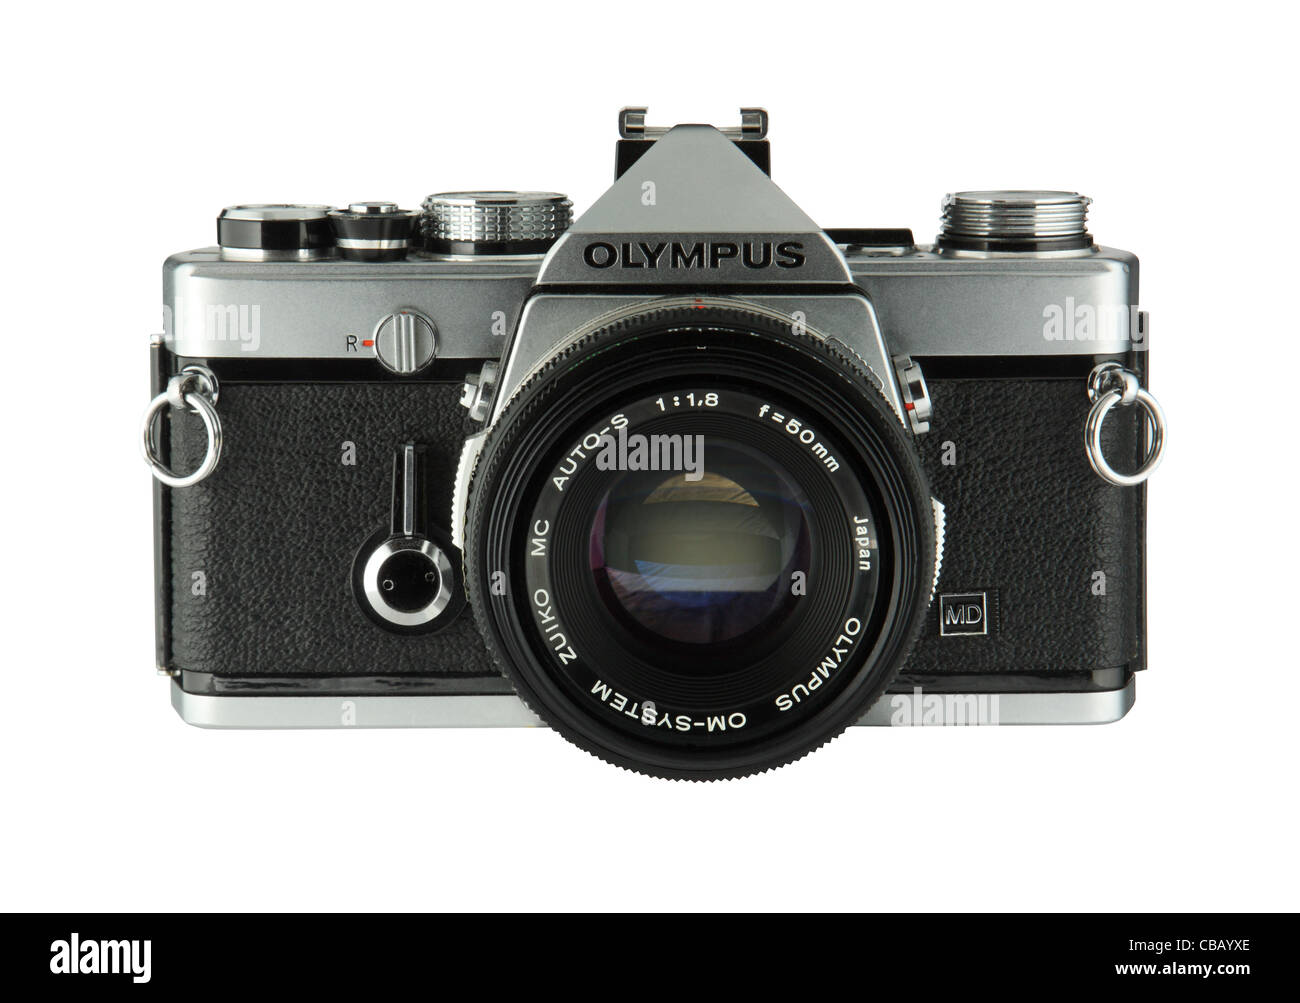 Classic 35mm SLR film camera the Olympus OM1  isolated on white background - Stock Image